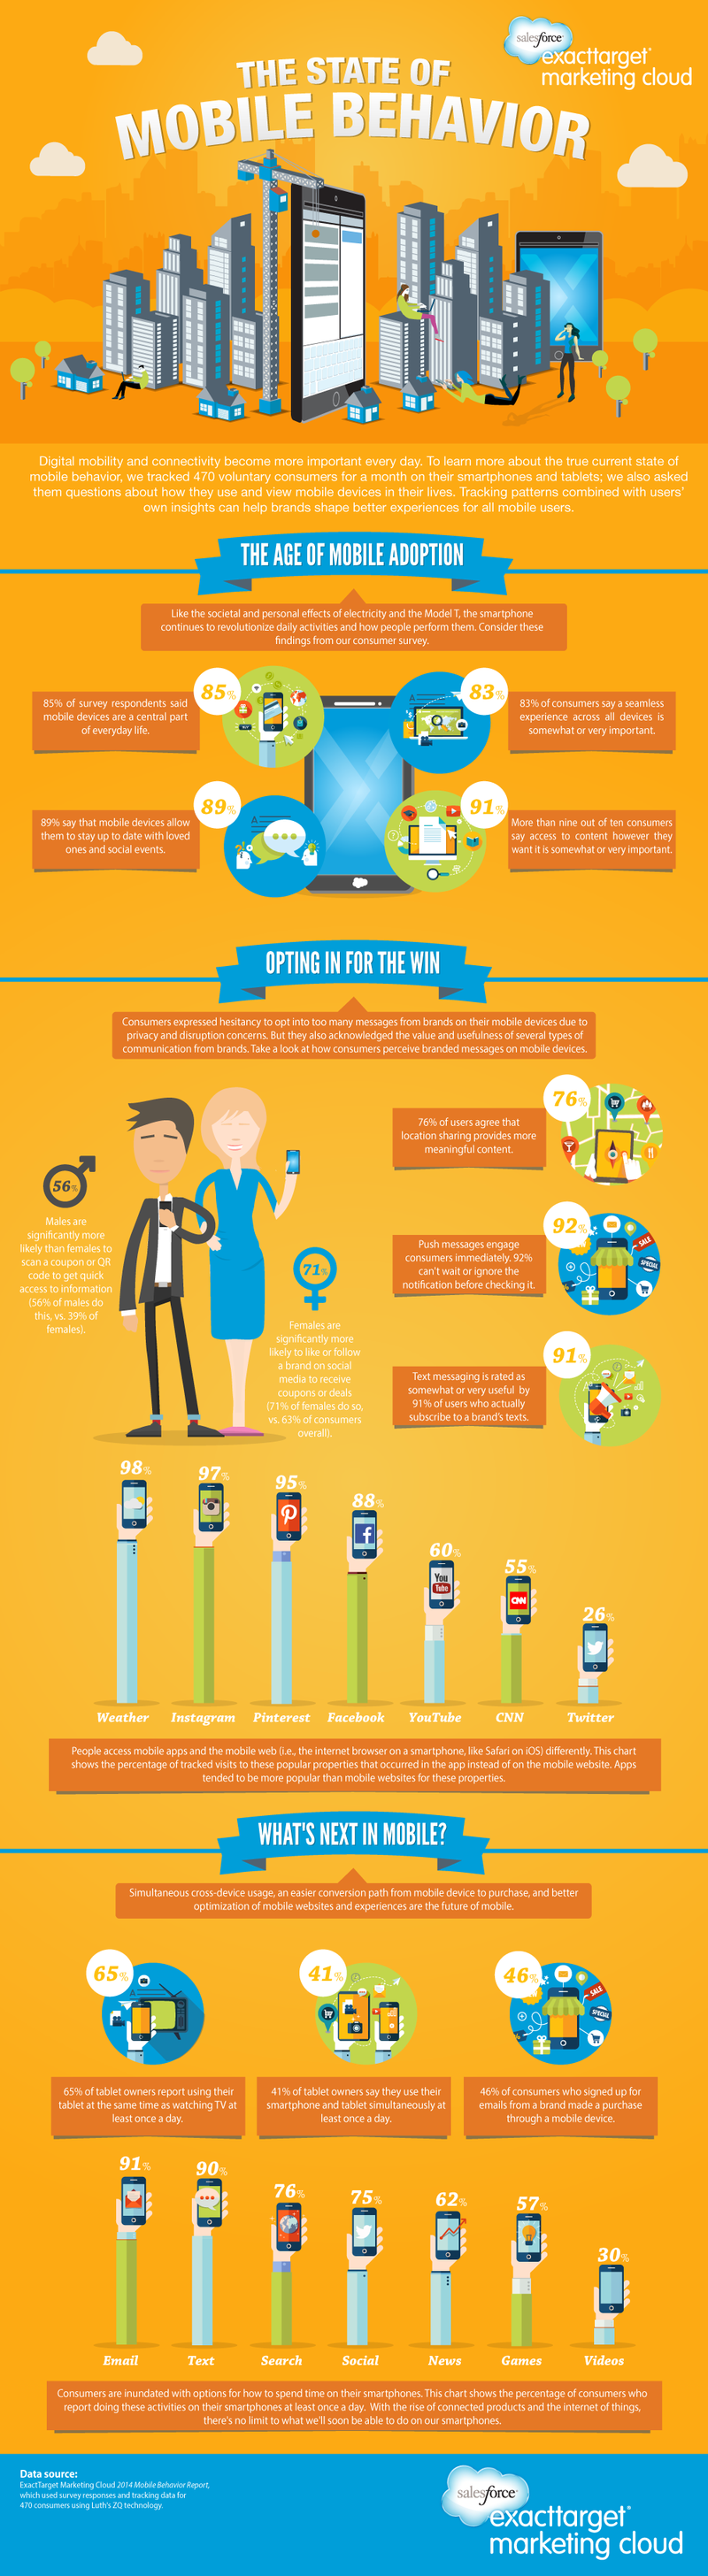 Mobile Behavior 2014